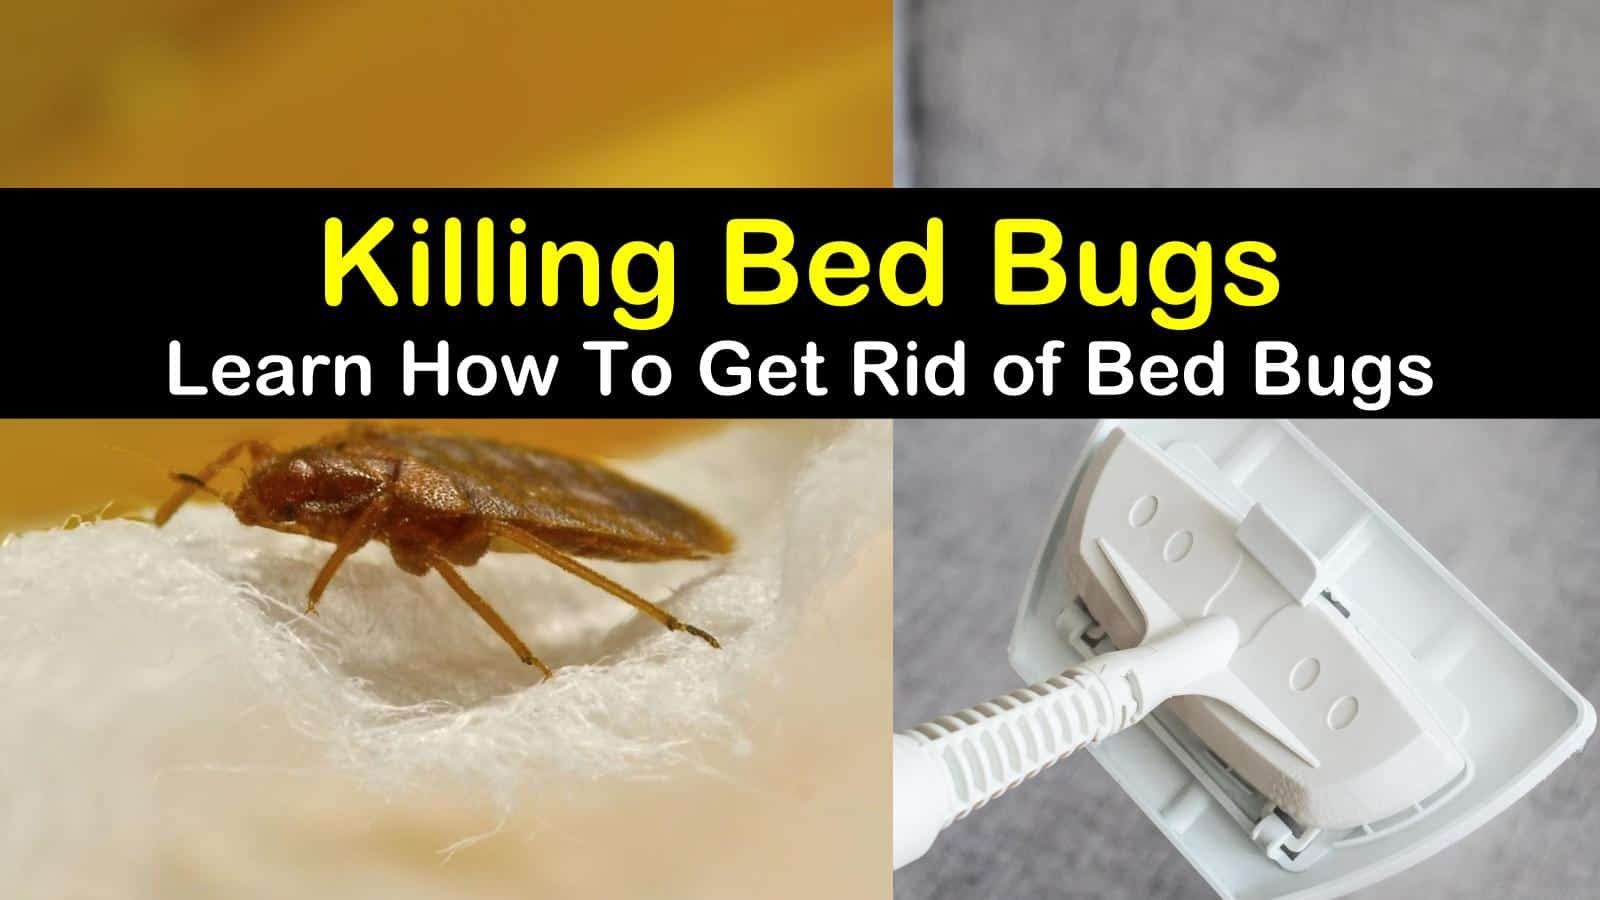 Killing Bed Bugs - Learn How To Get Rid of Bed Bugs